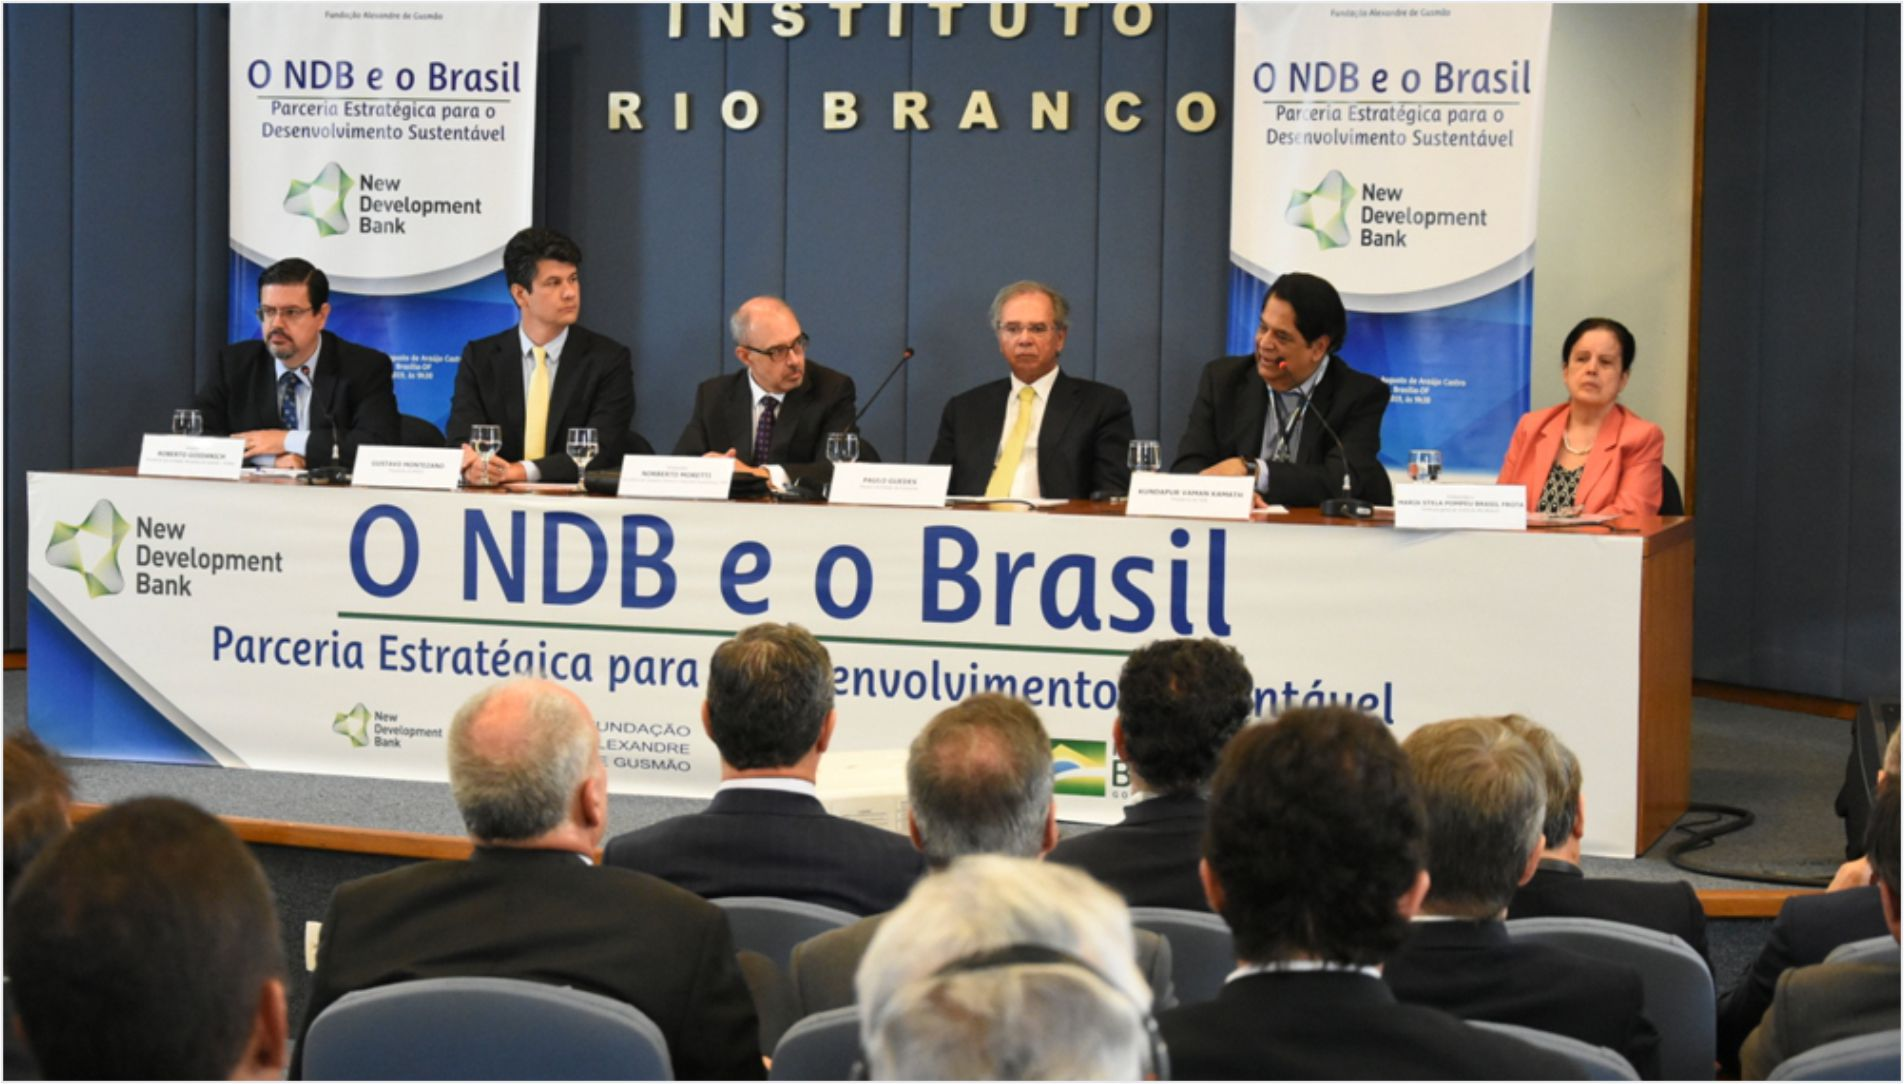 Ministry of Foreign Affairs and FUNAG conduct seminar on NDB and Brazil